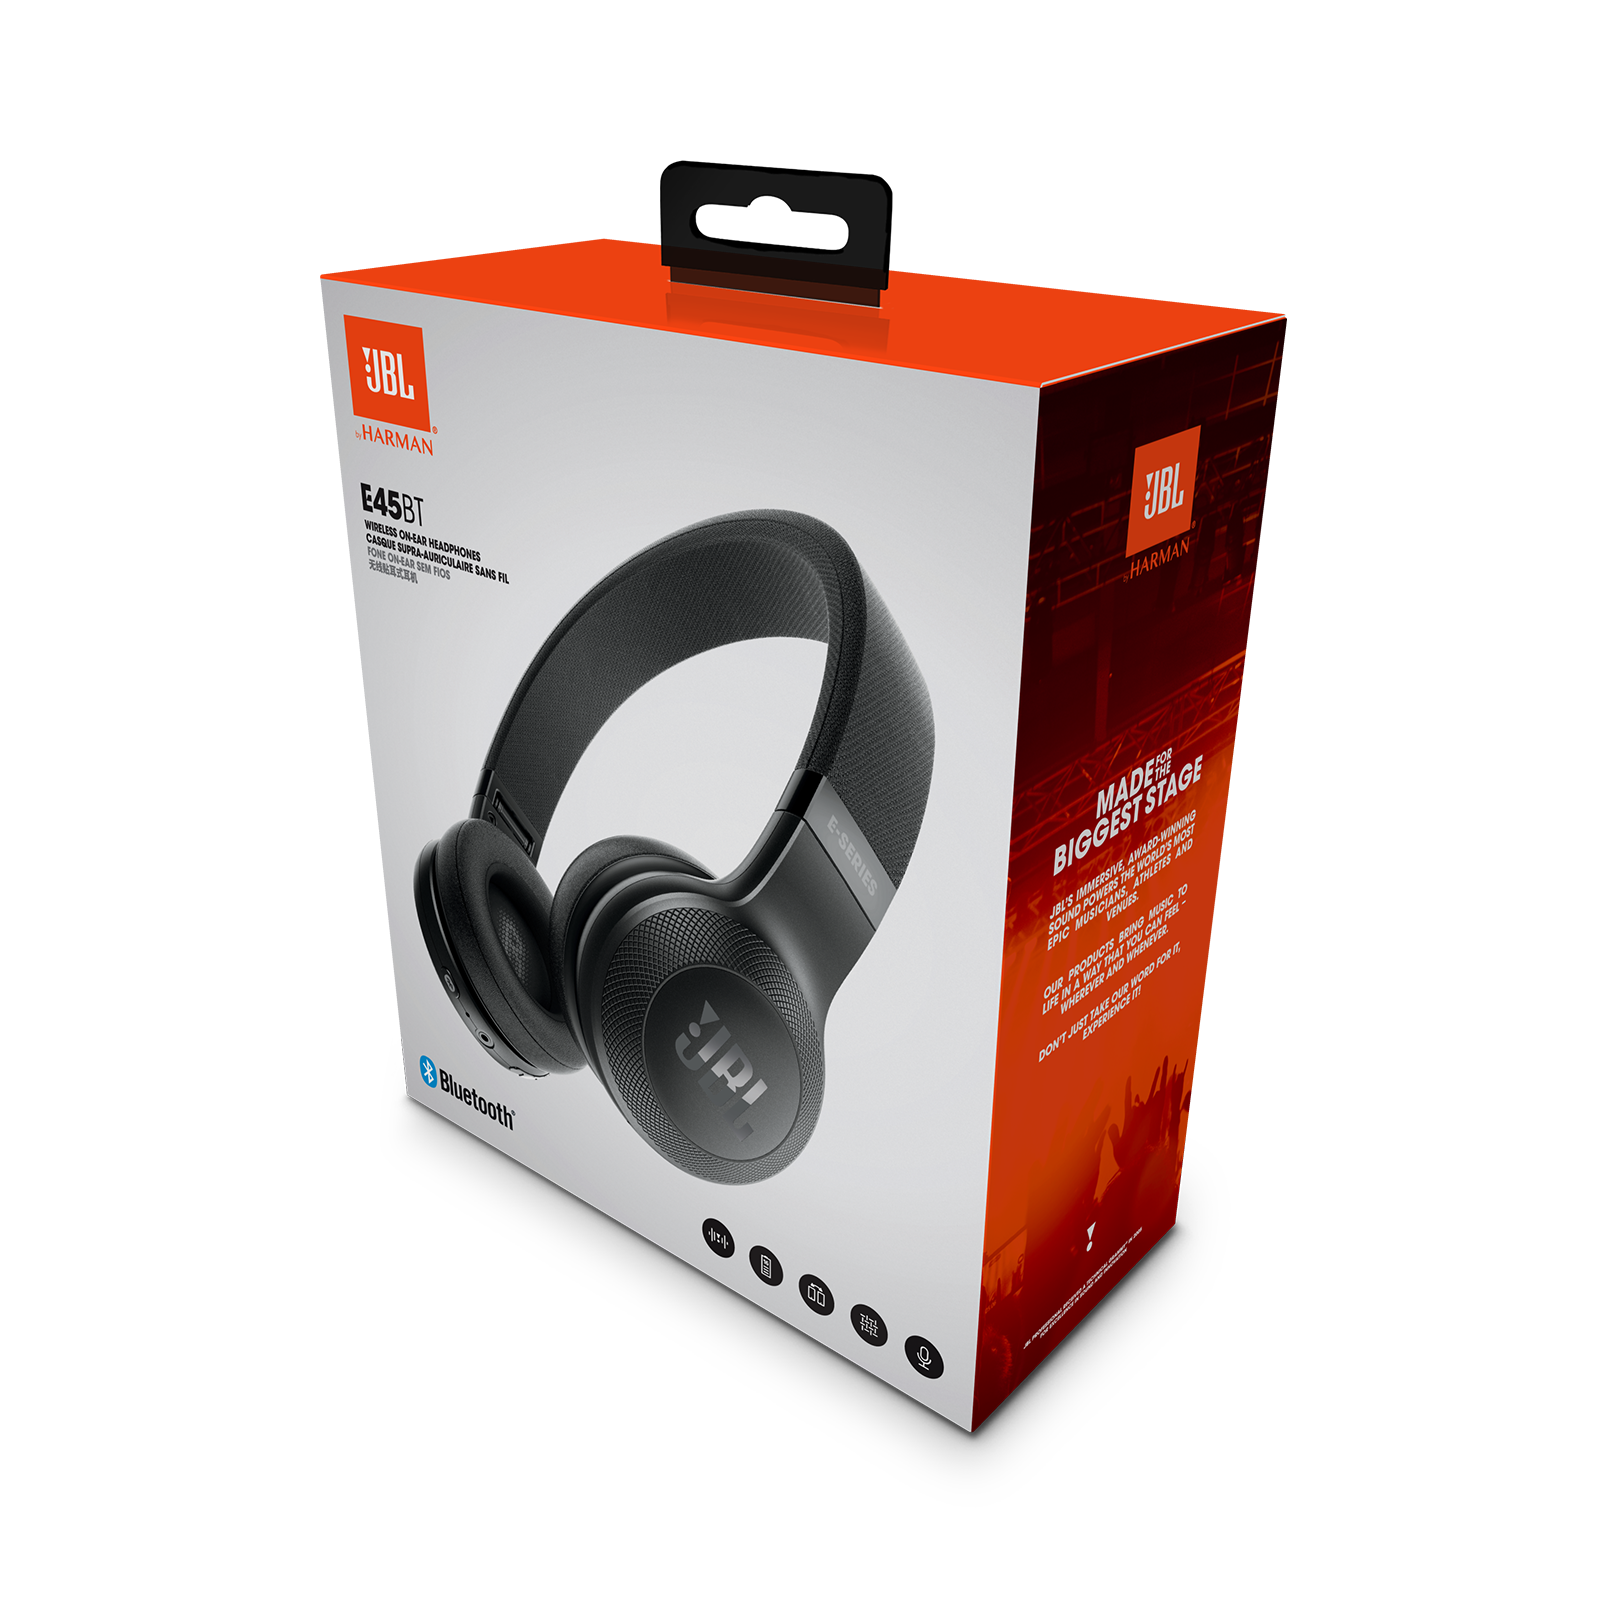 Jbl E45bt Wireless On Ear Headphones Wiring Diagram For Dual Led Light Bars Free Download Manuals Downloads